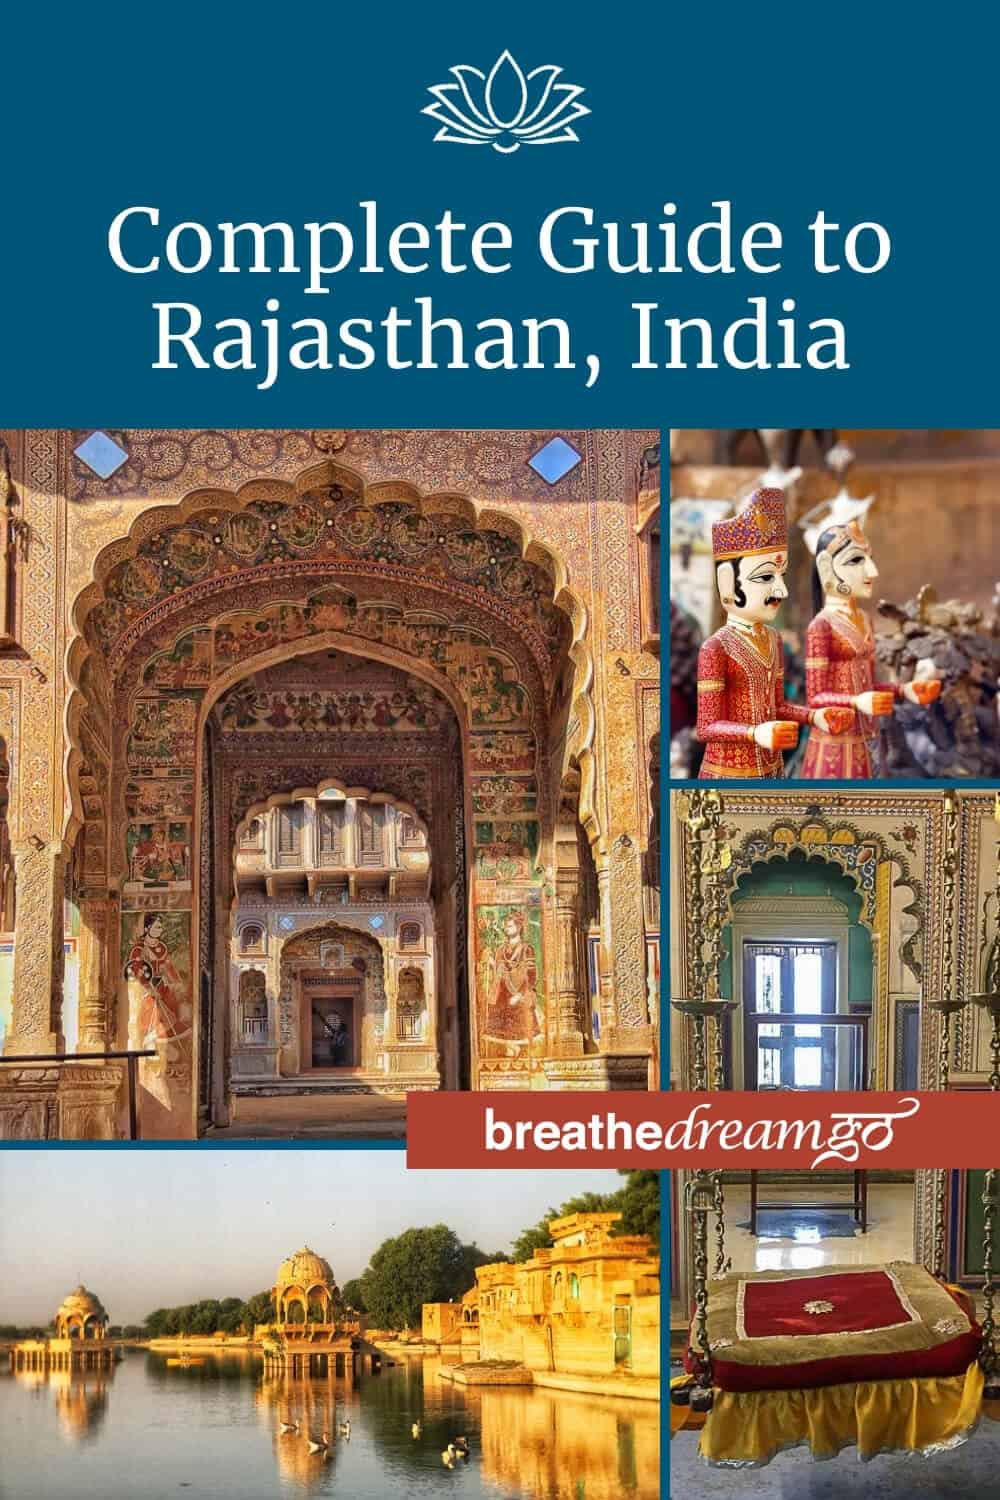 Complete guide Rajasthan, India